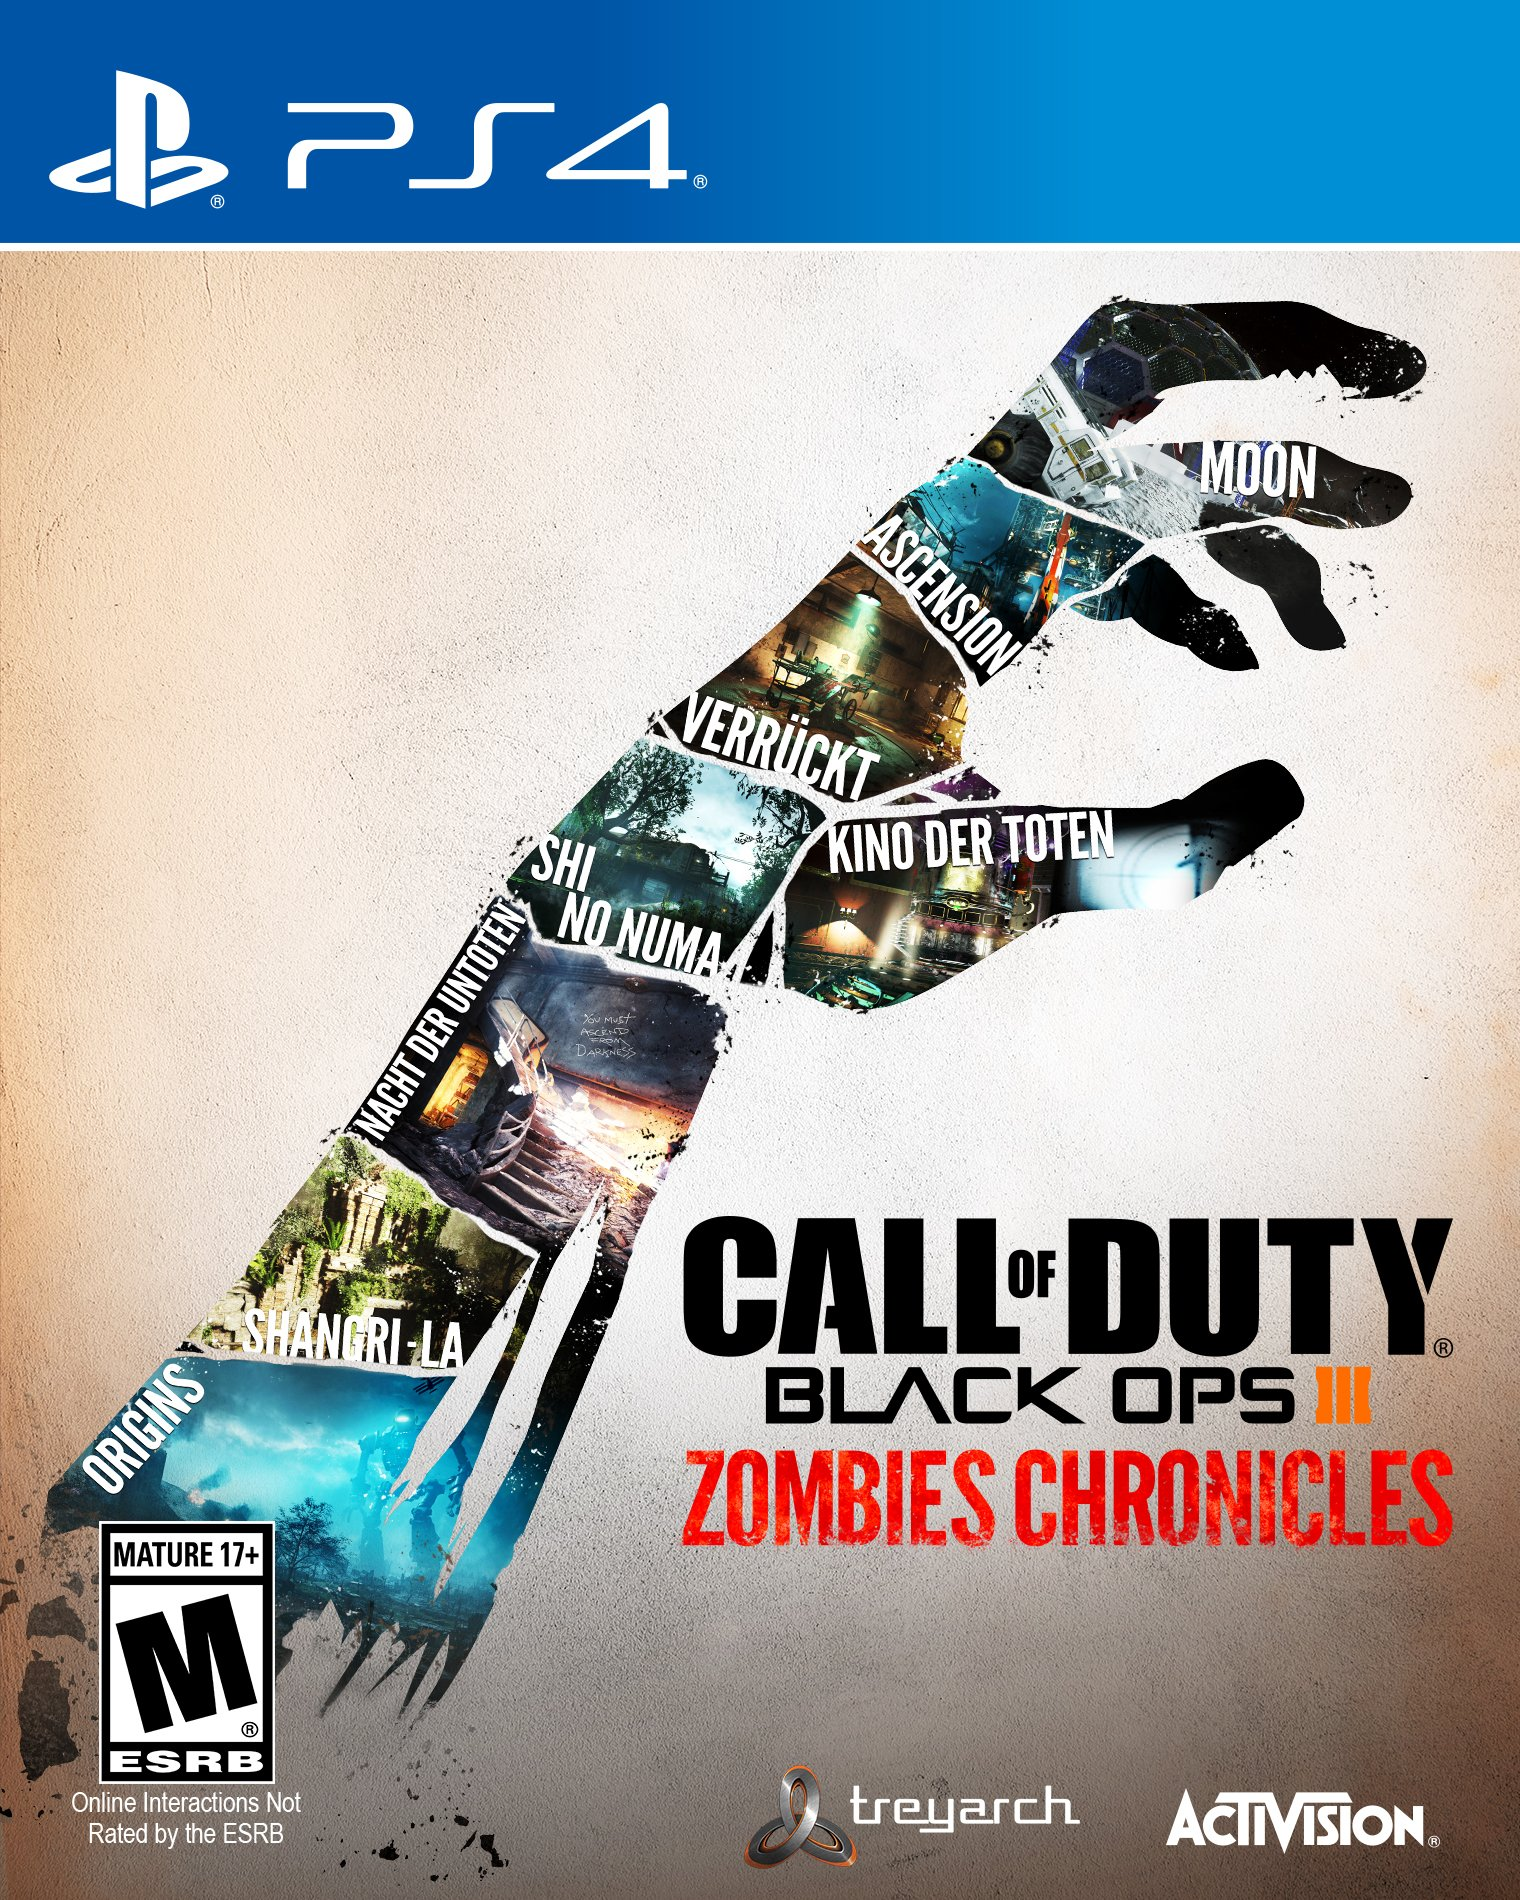 call of duty world at war zombies download free full version